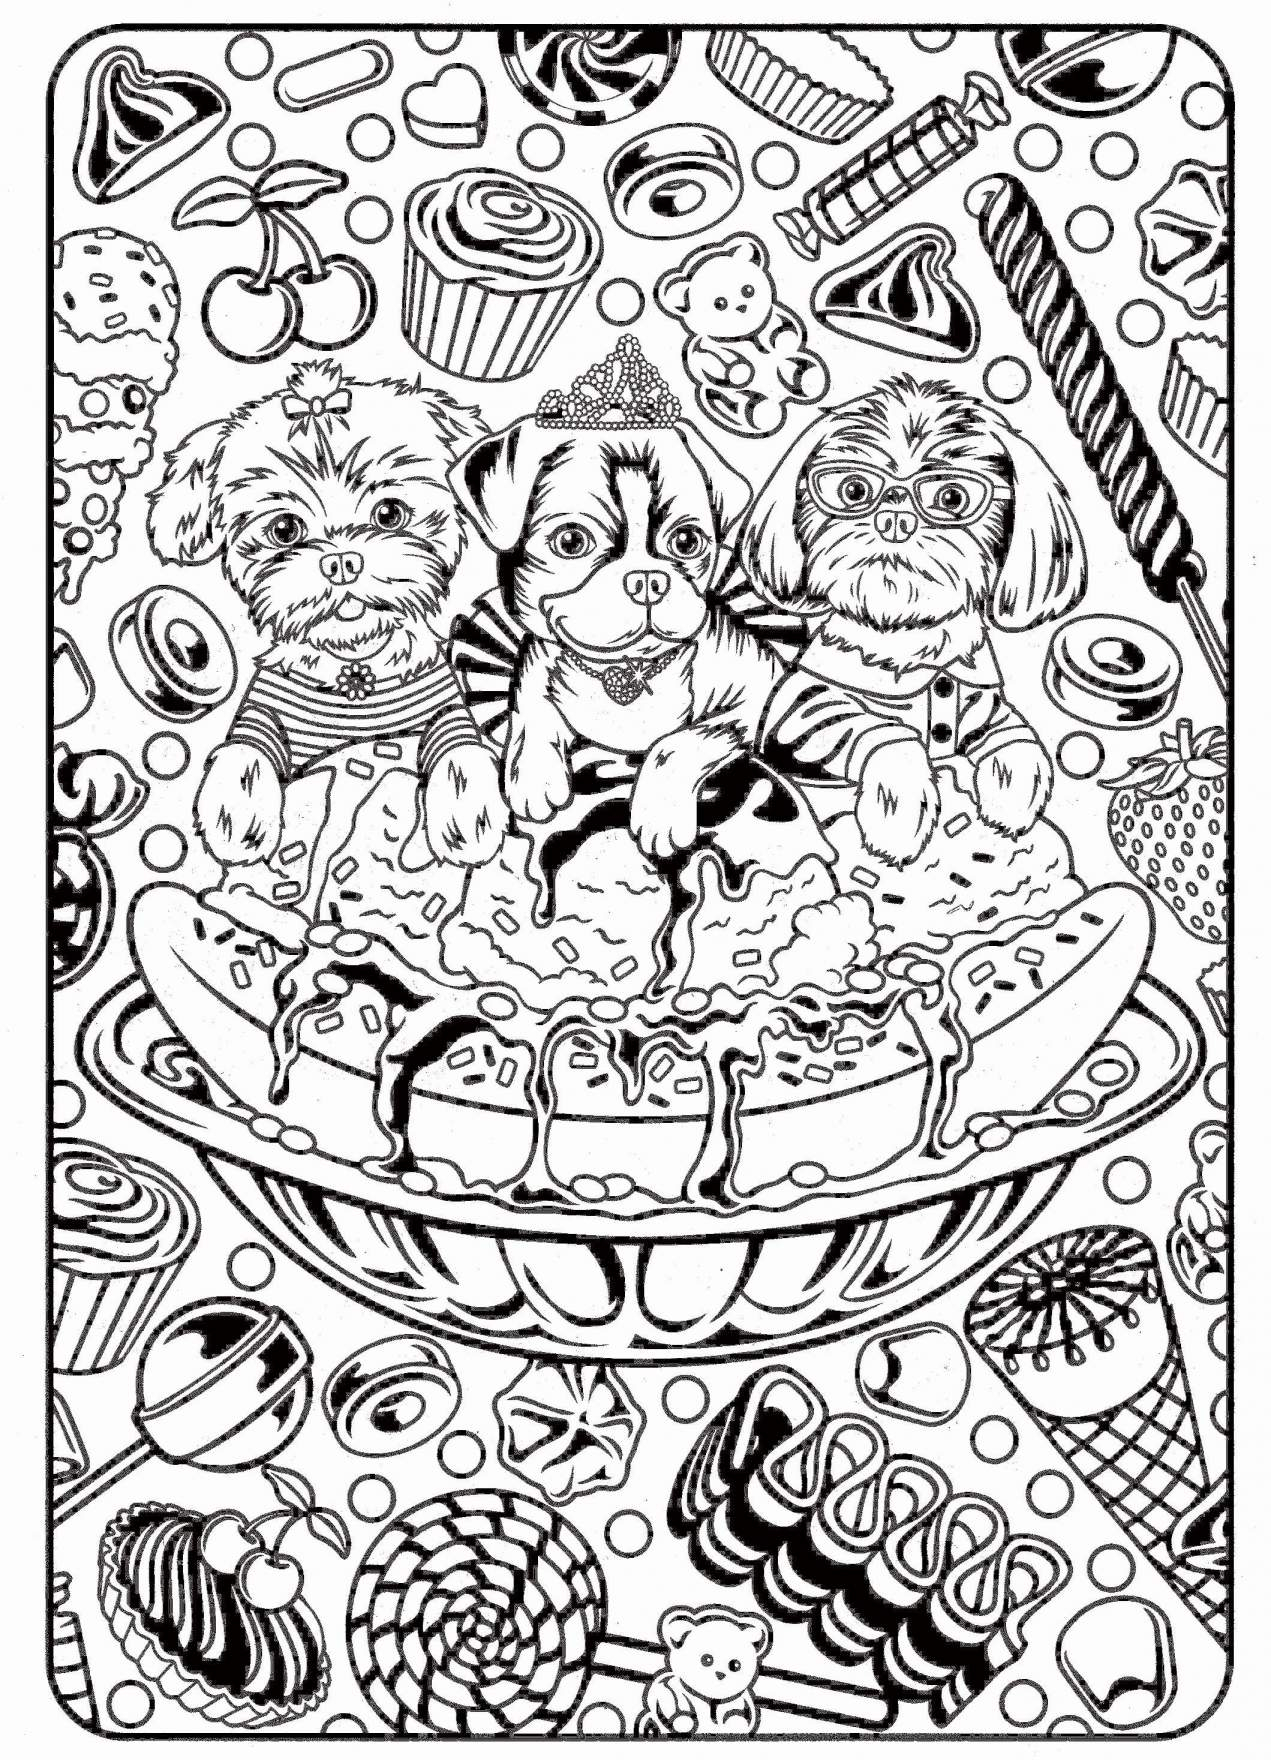 make your own coloring pages for free Download-Christmas Coloring Pages Free for Adults 28 Awesome Snoopy Christmas Coloring Pages forstergallery 3-c